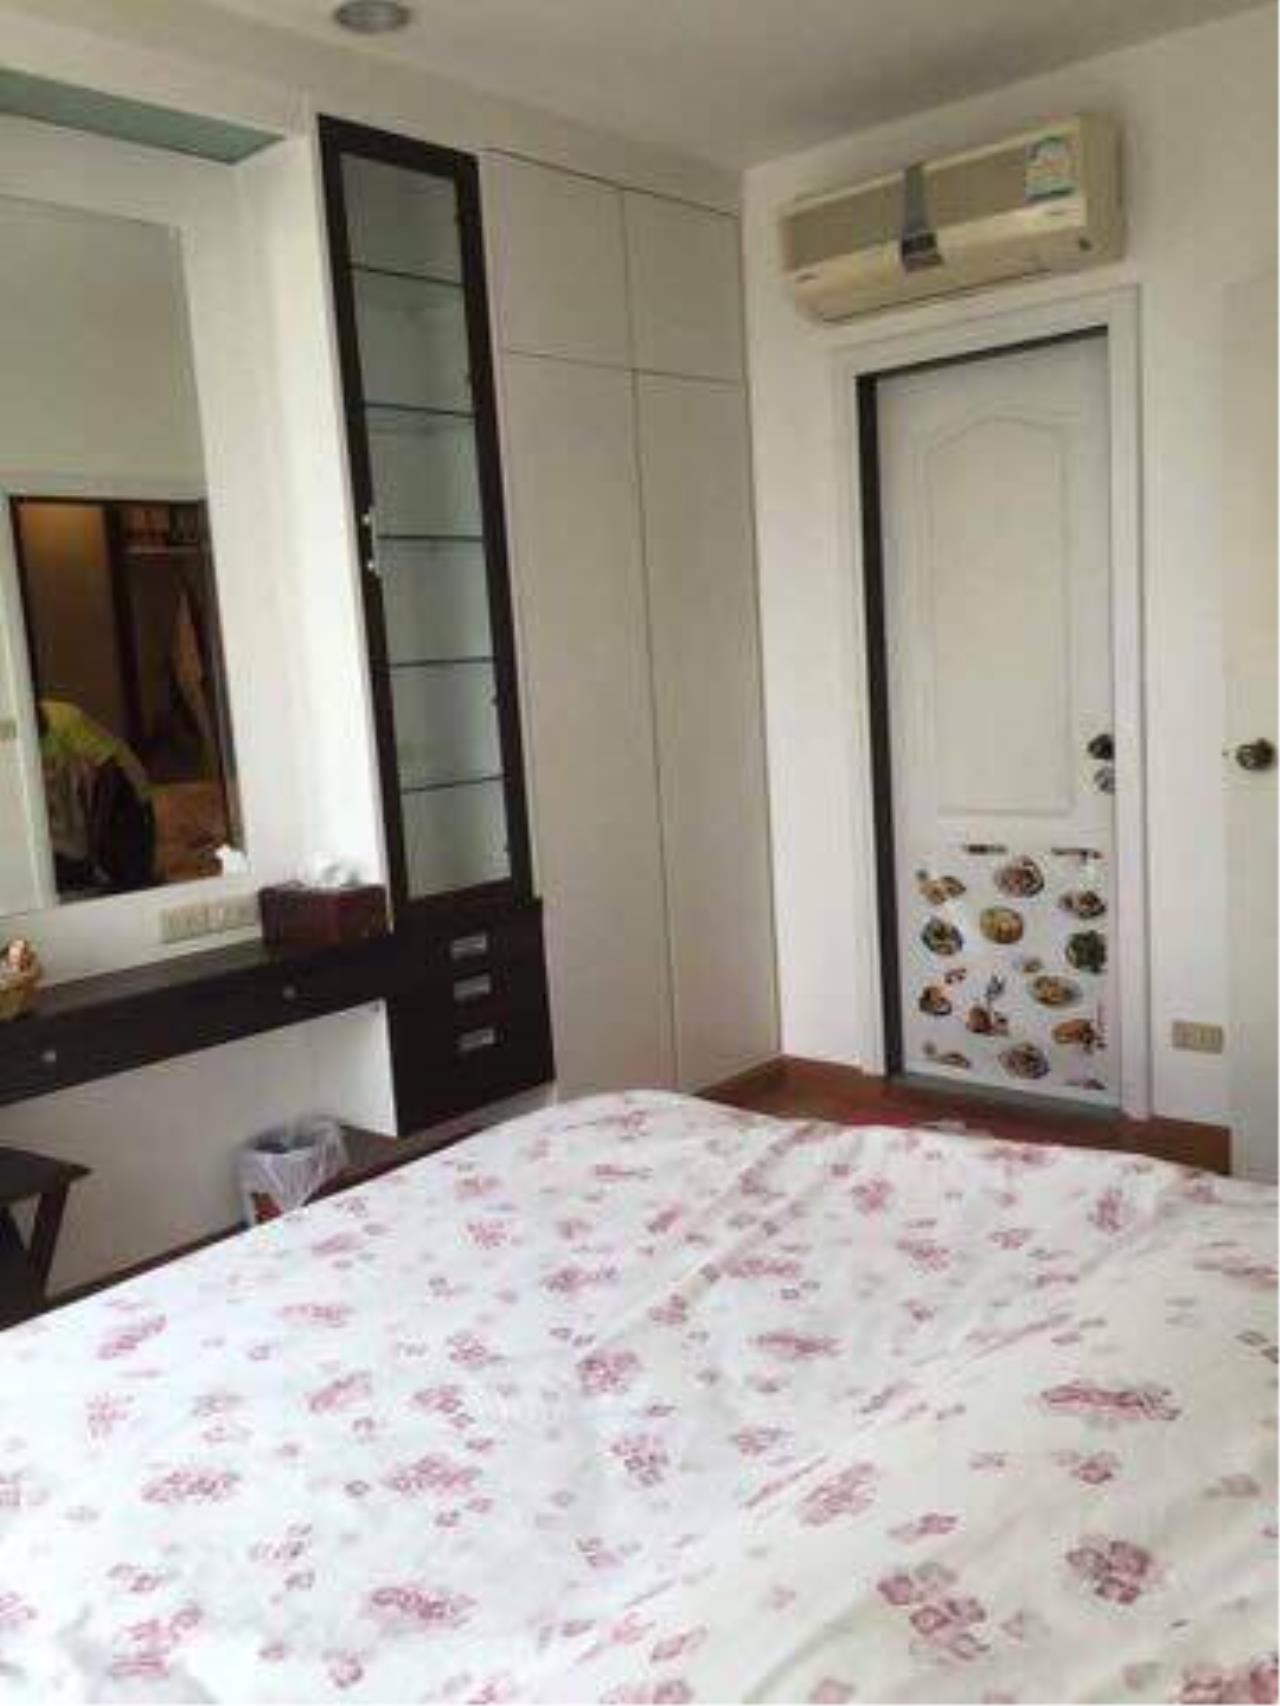 RE/MAX All Star Realty Agency's Sathorn House Condo for rent (BTS Sarasak) 11